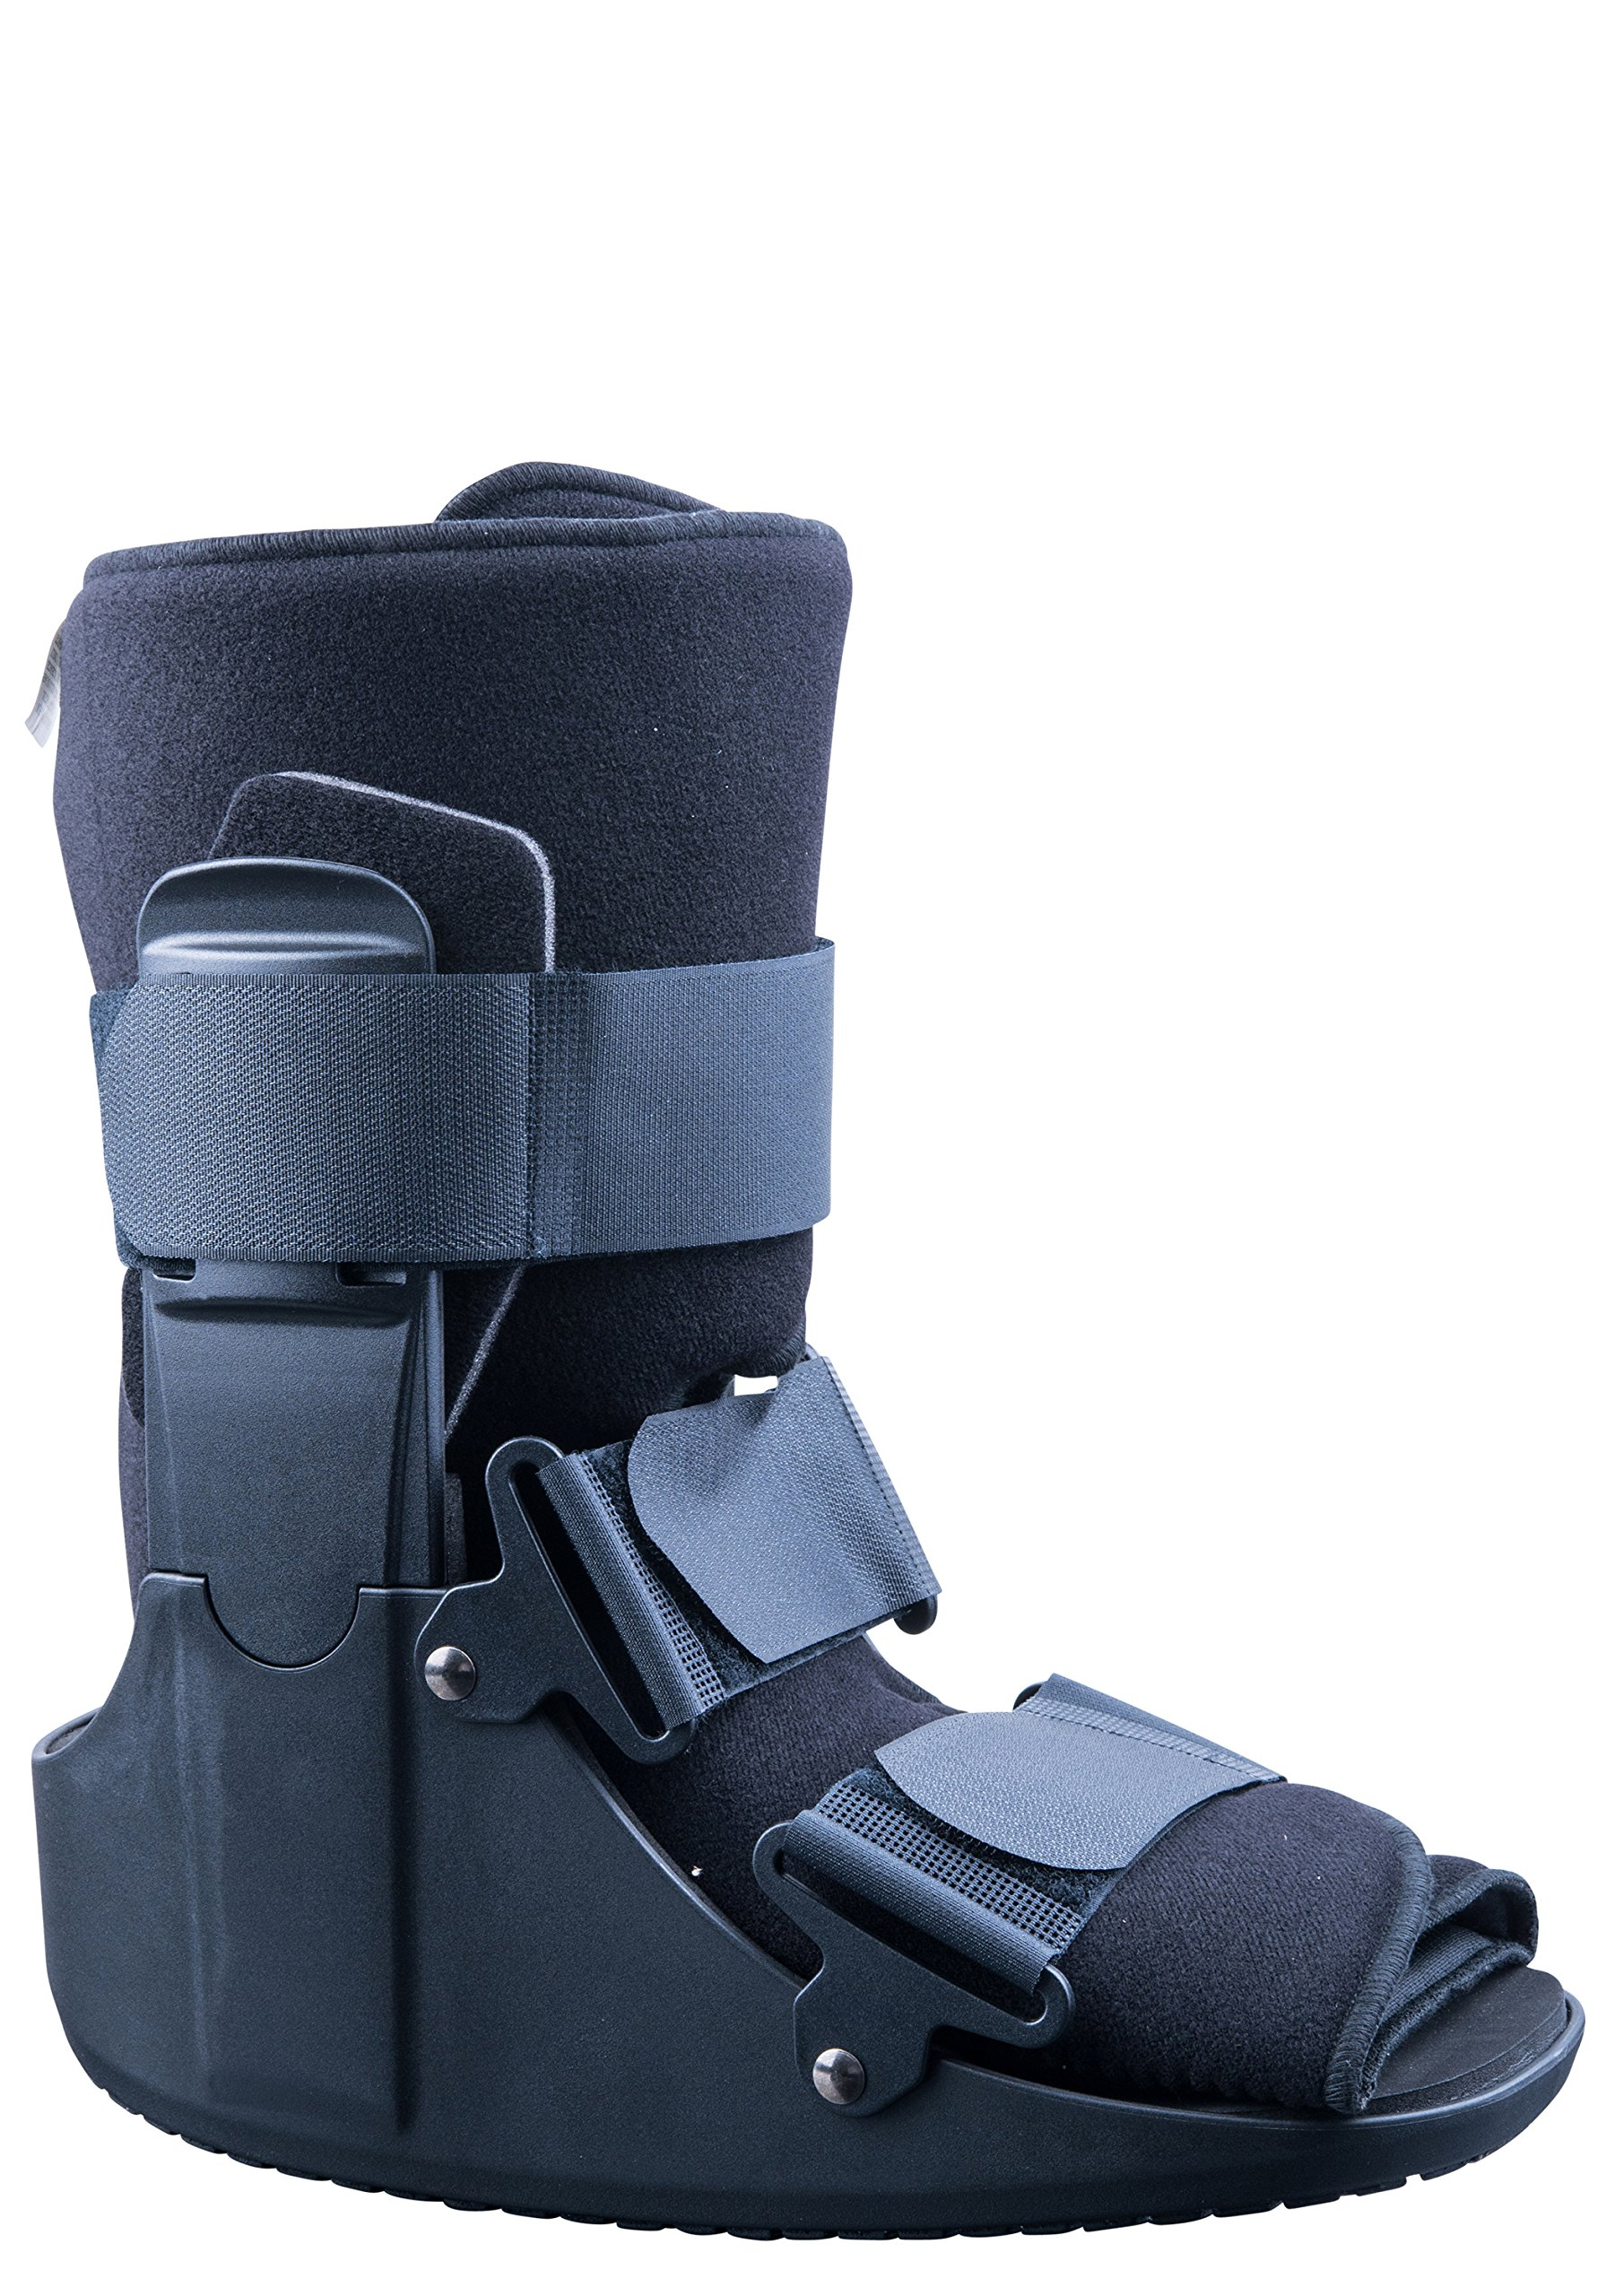 Mars Wellness Premium Polymer Low Top Cam Walker Fracture Ankle/Foot Stabilizer Boot - L - Updated Size Chart